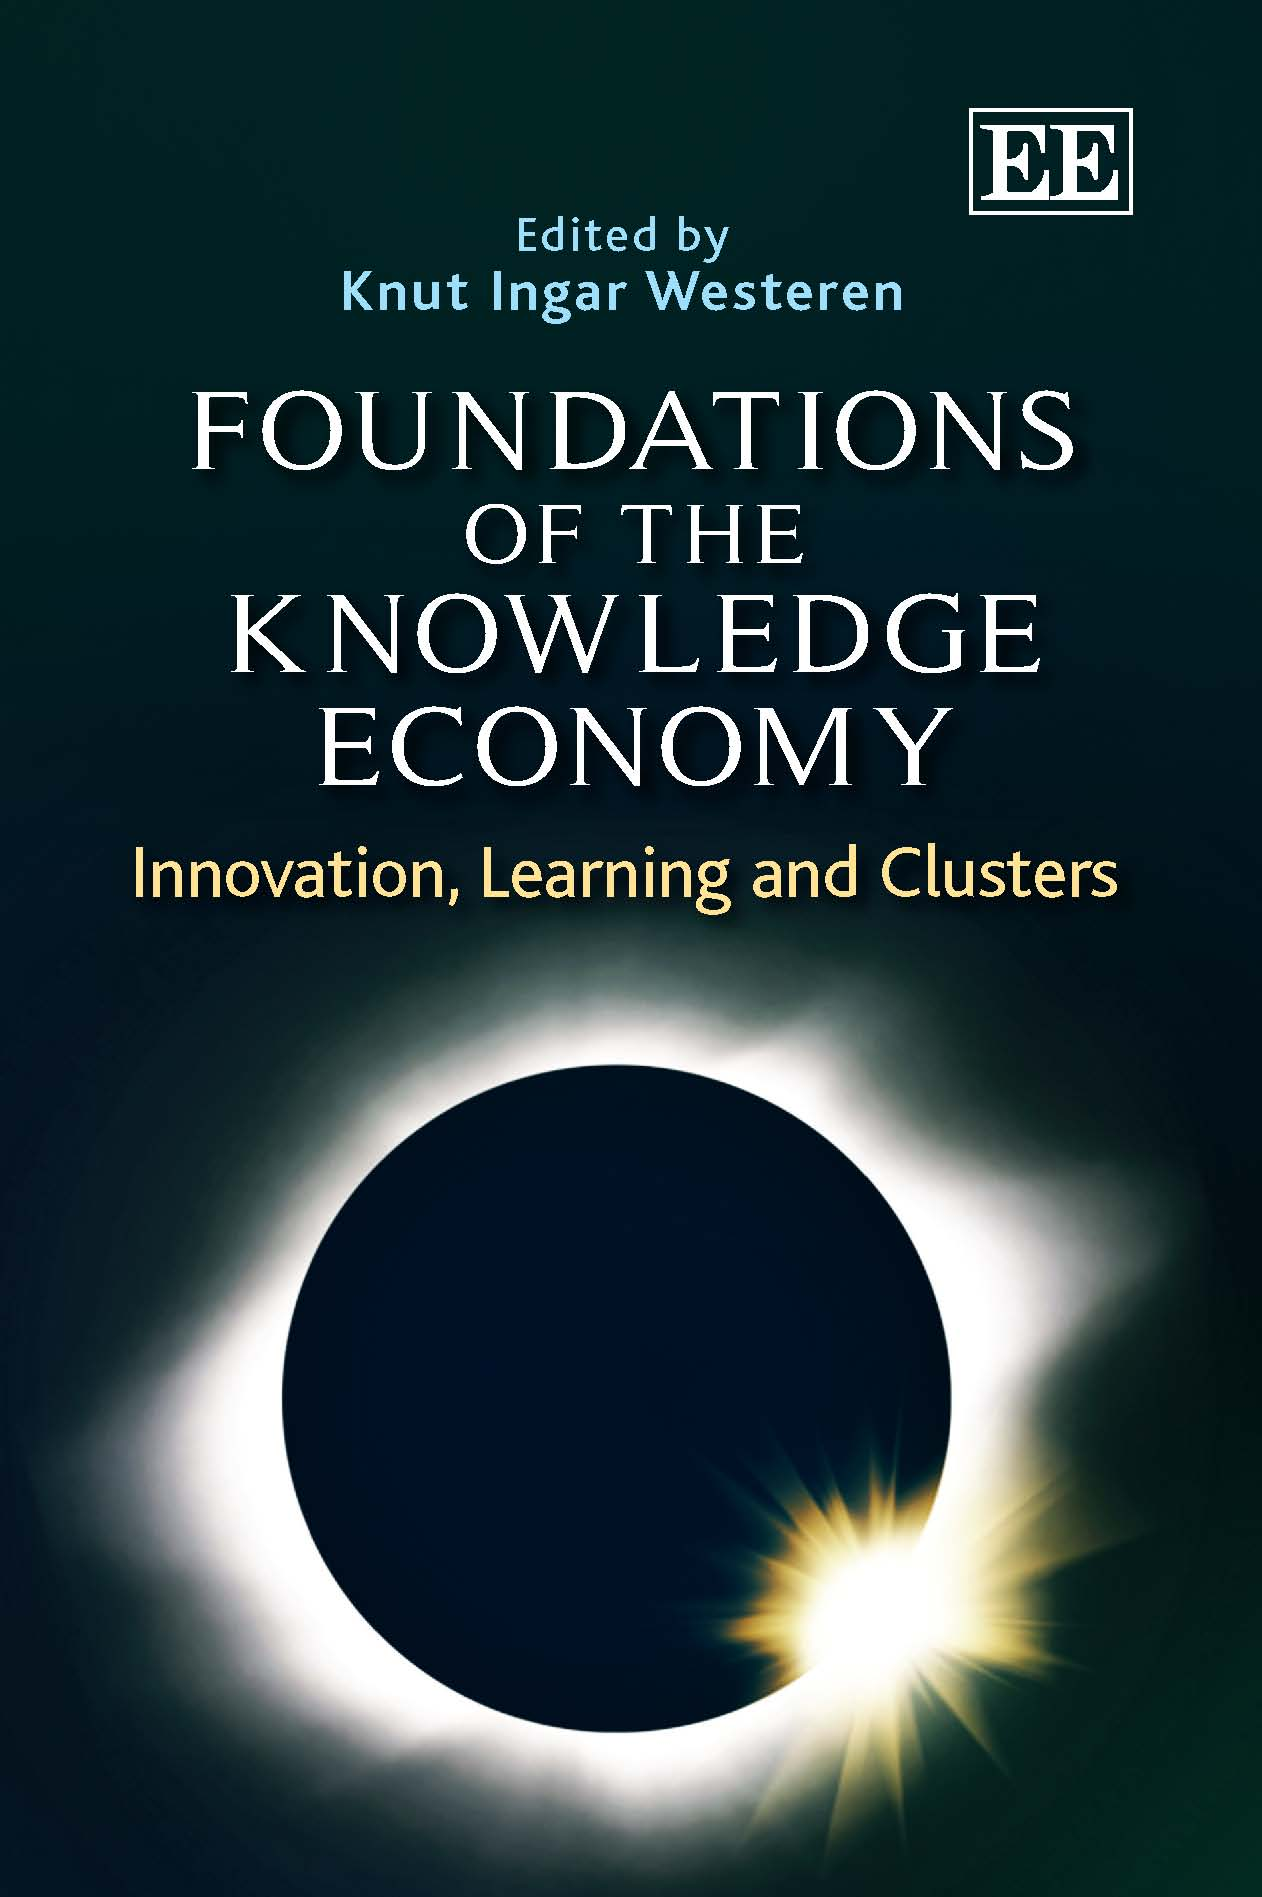 Foundations of the Knowledge Economy